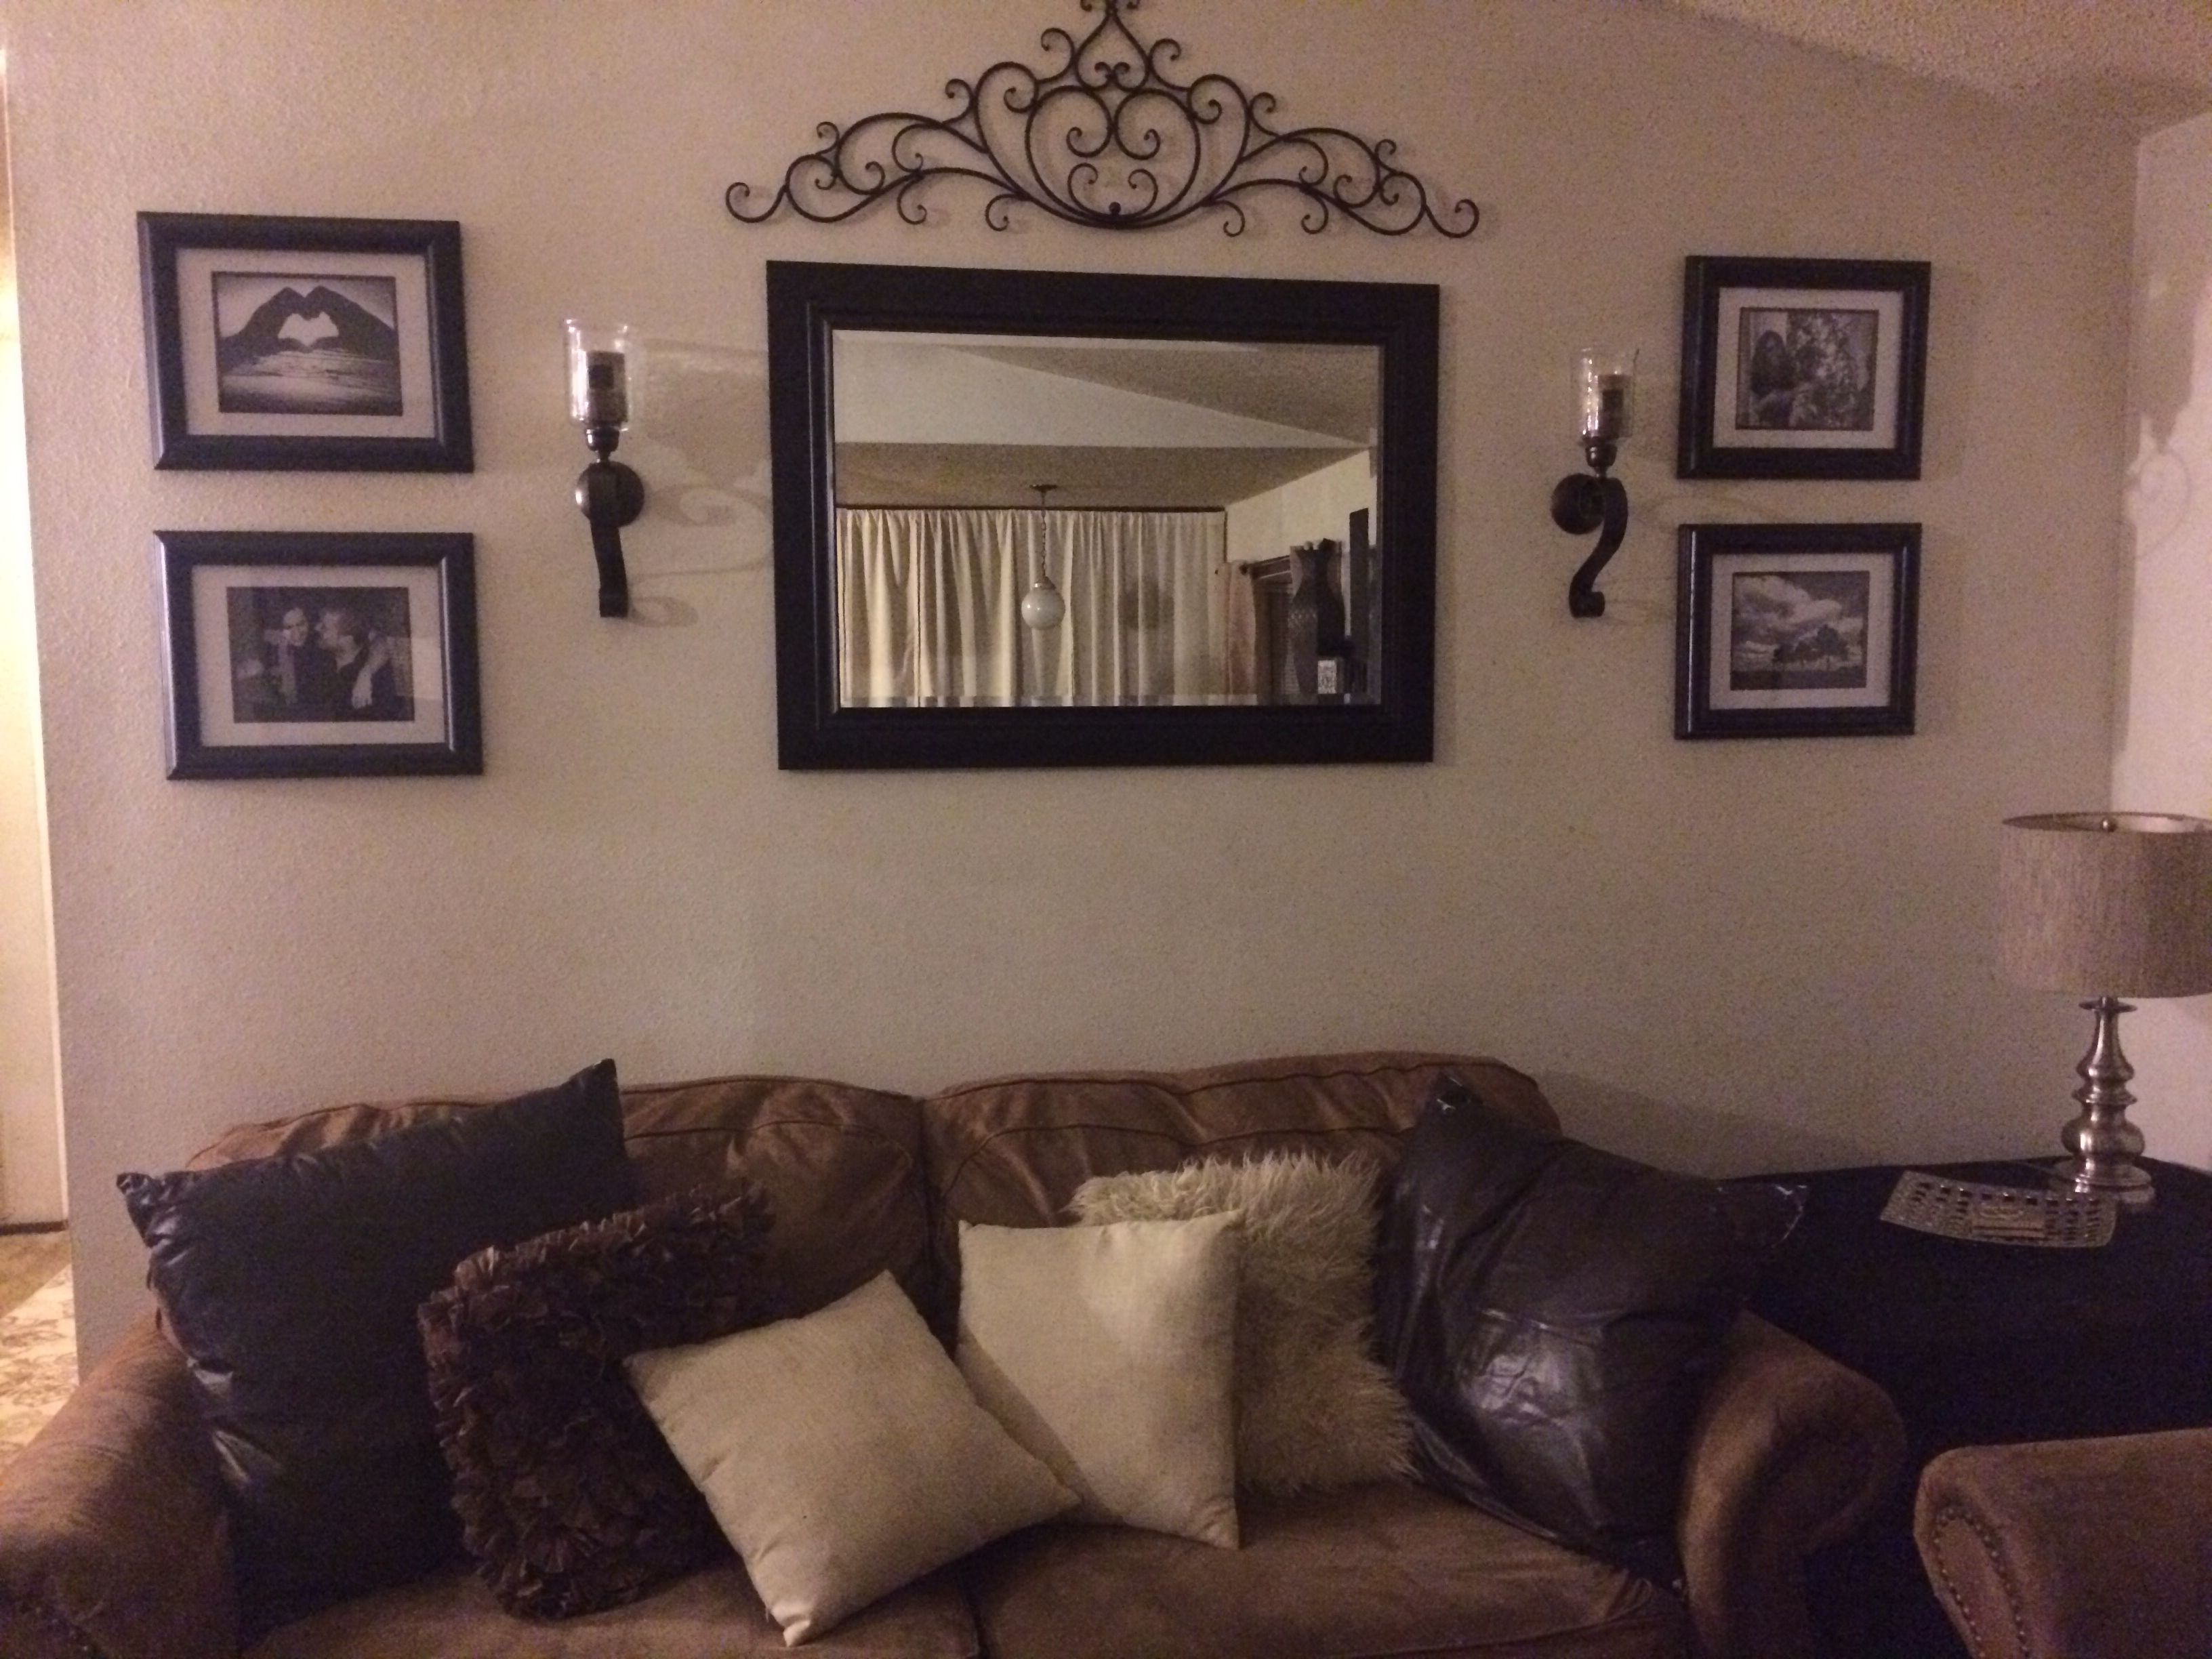 Brown Wall Mirrors Throughout Well Known Behind Couch Wall In Living Room Mirror, Frame, Sconces, And Metal (View 10 of 20)